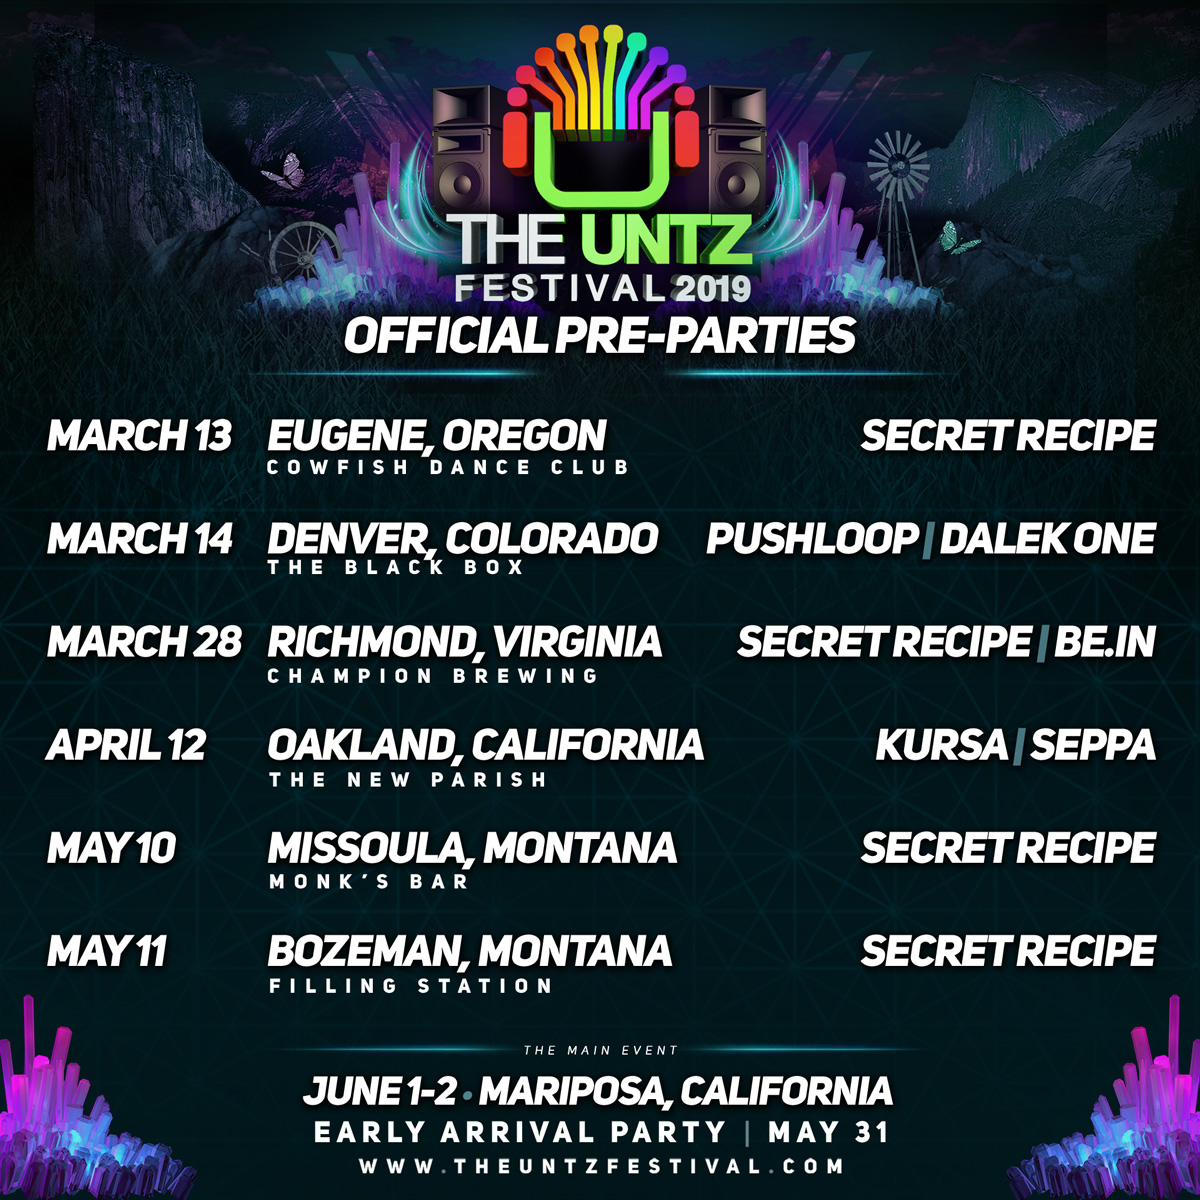 The Untz Festival 2019 Pre-Parties